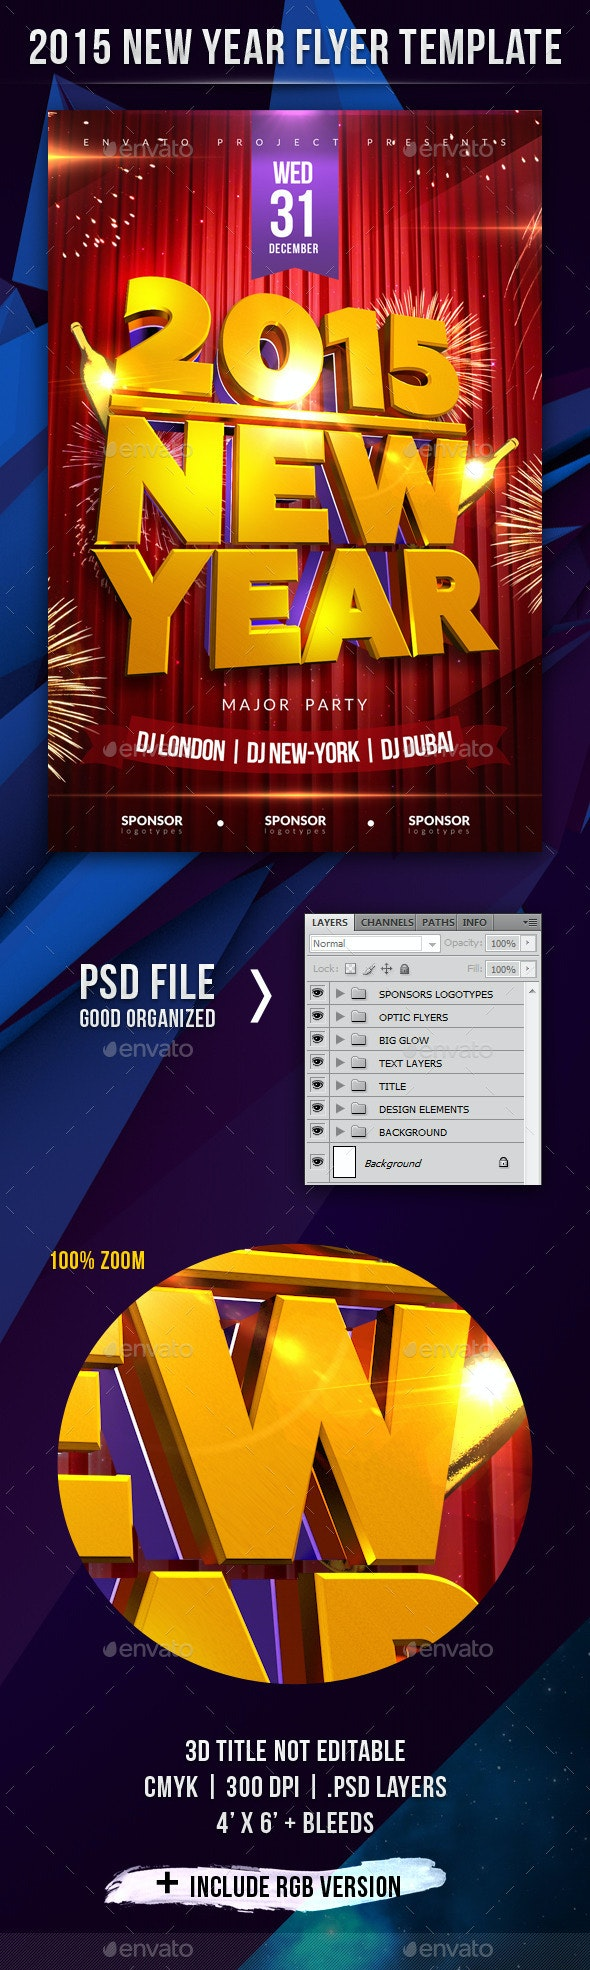 2015 New Year Flyer Template with 3D Title - Holidays Events